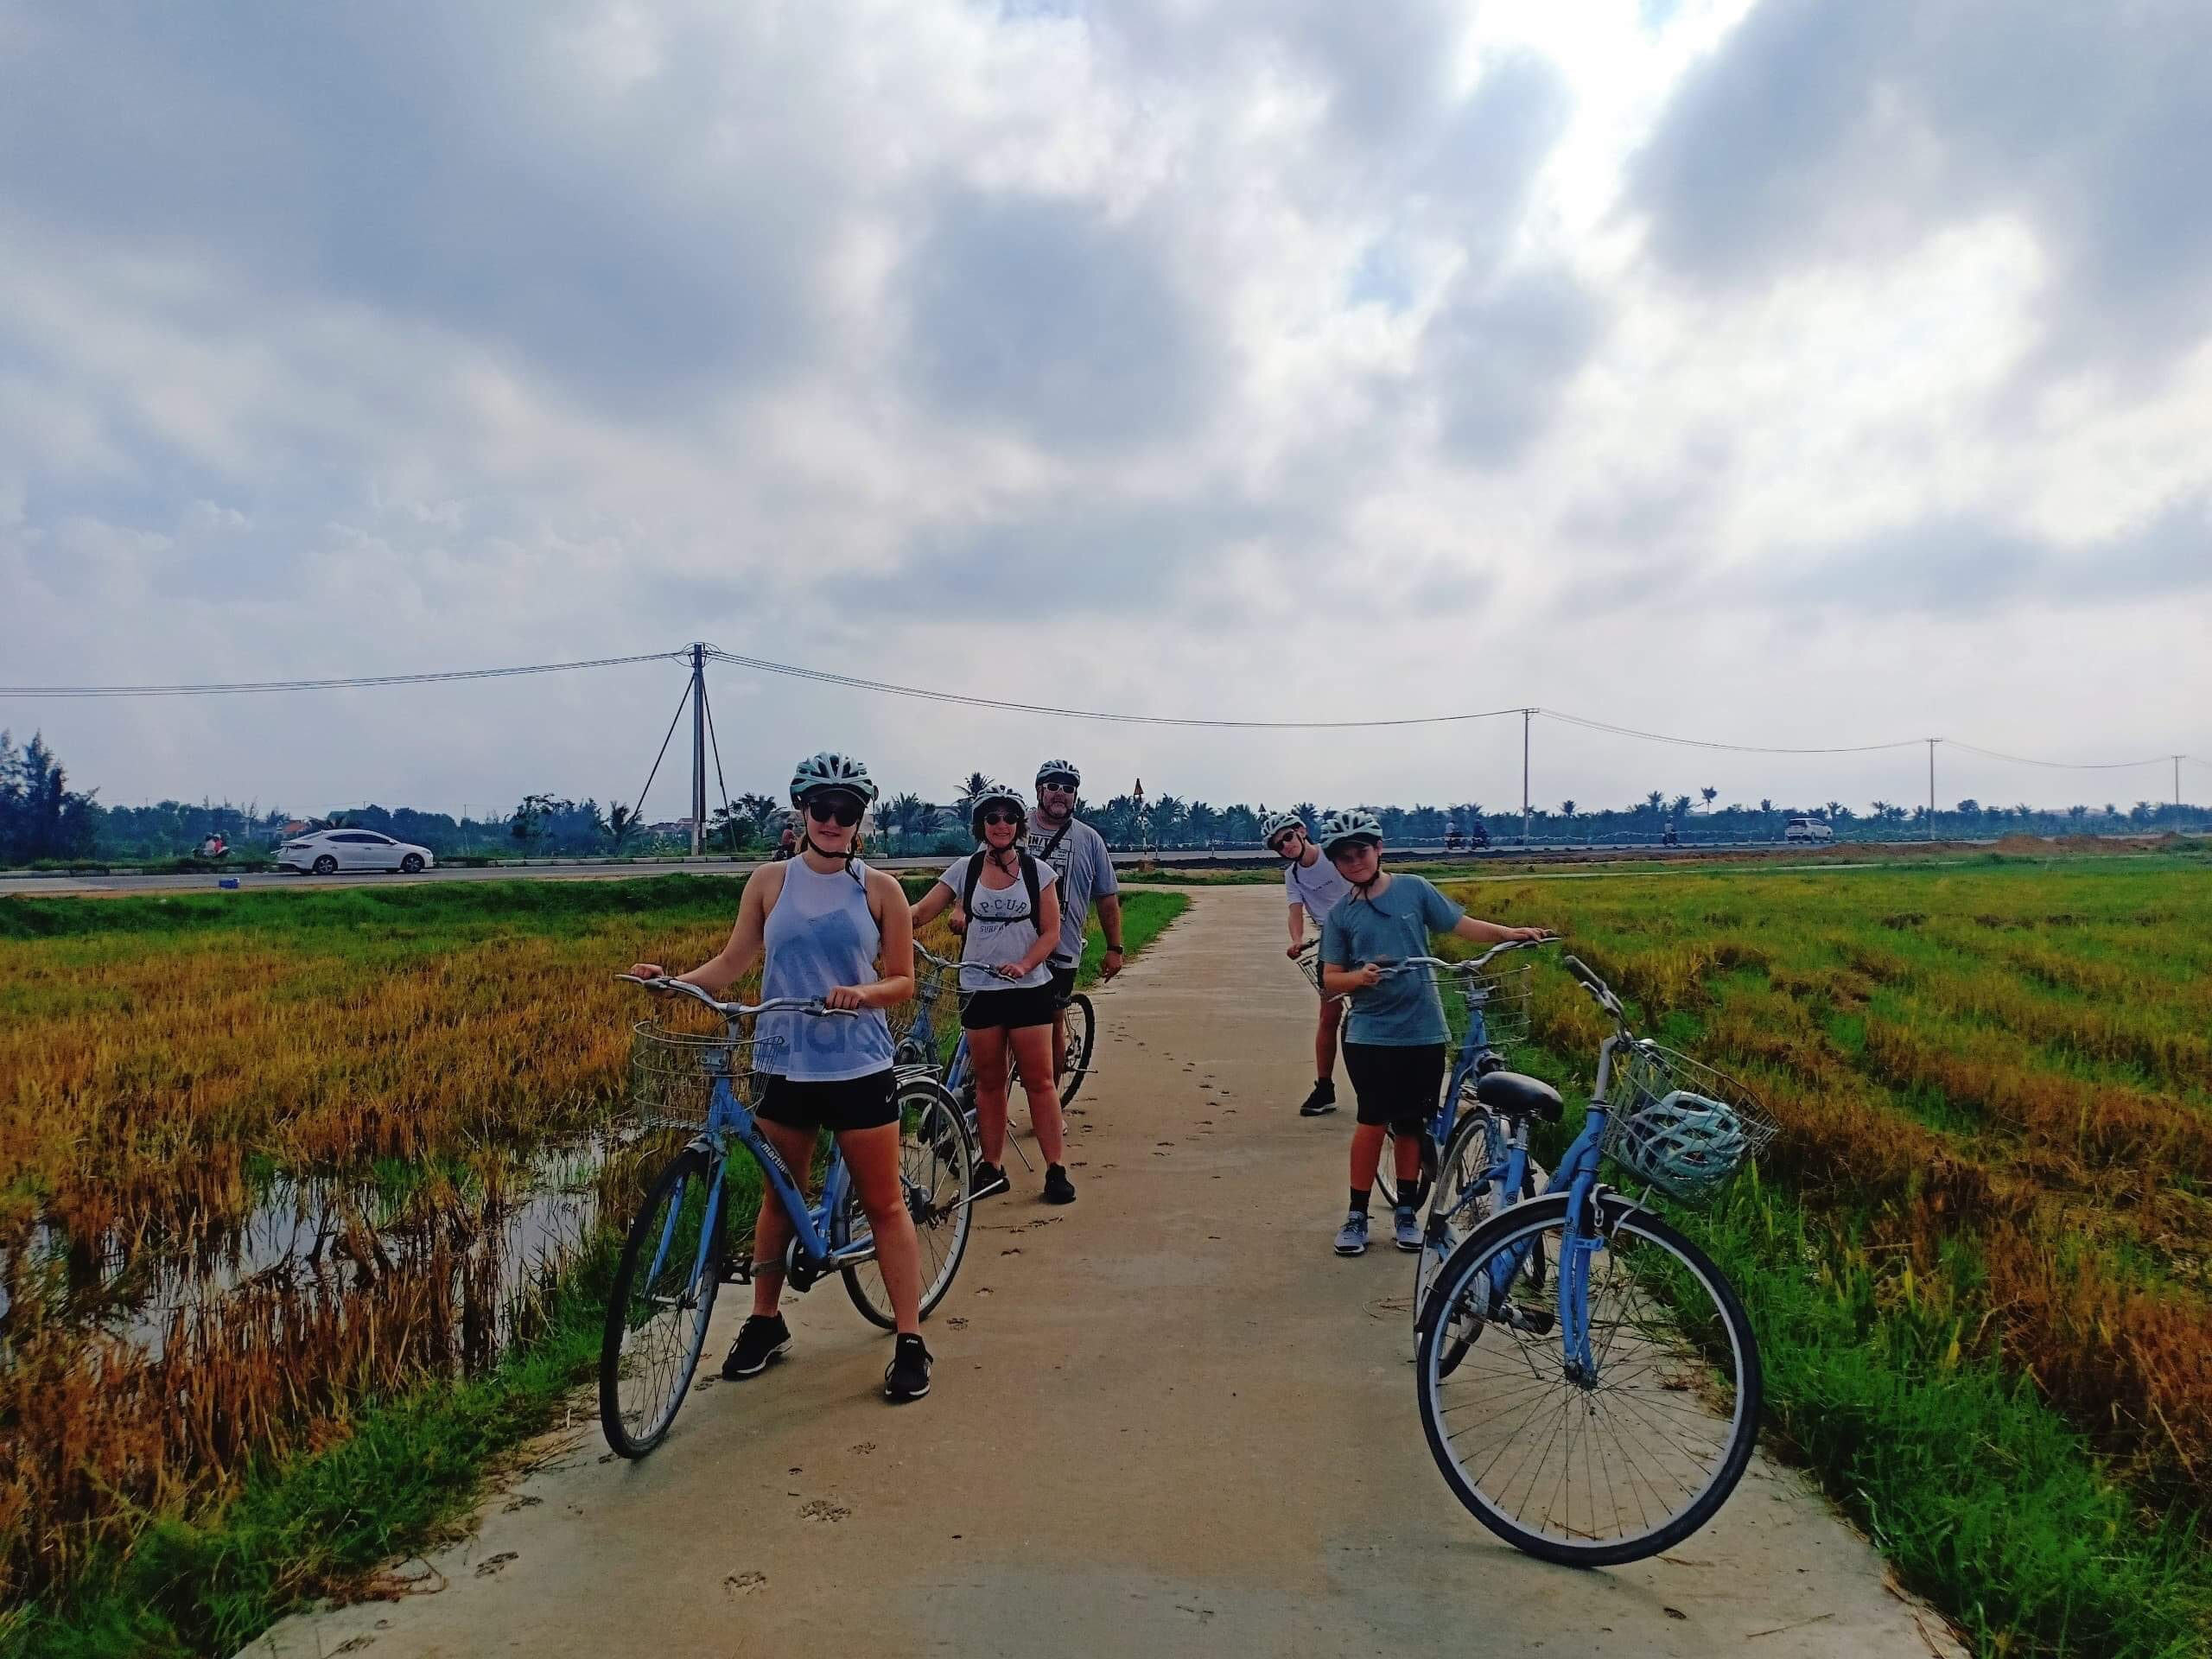 Countryside bike tour